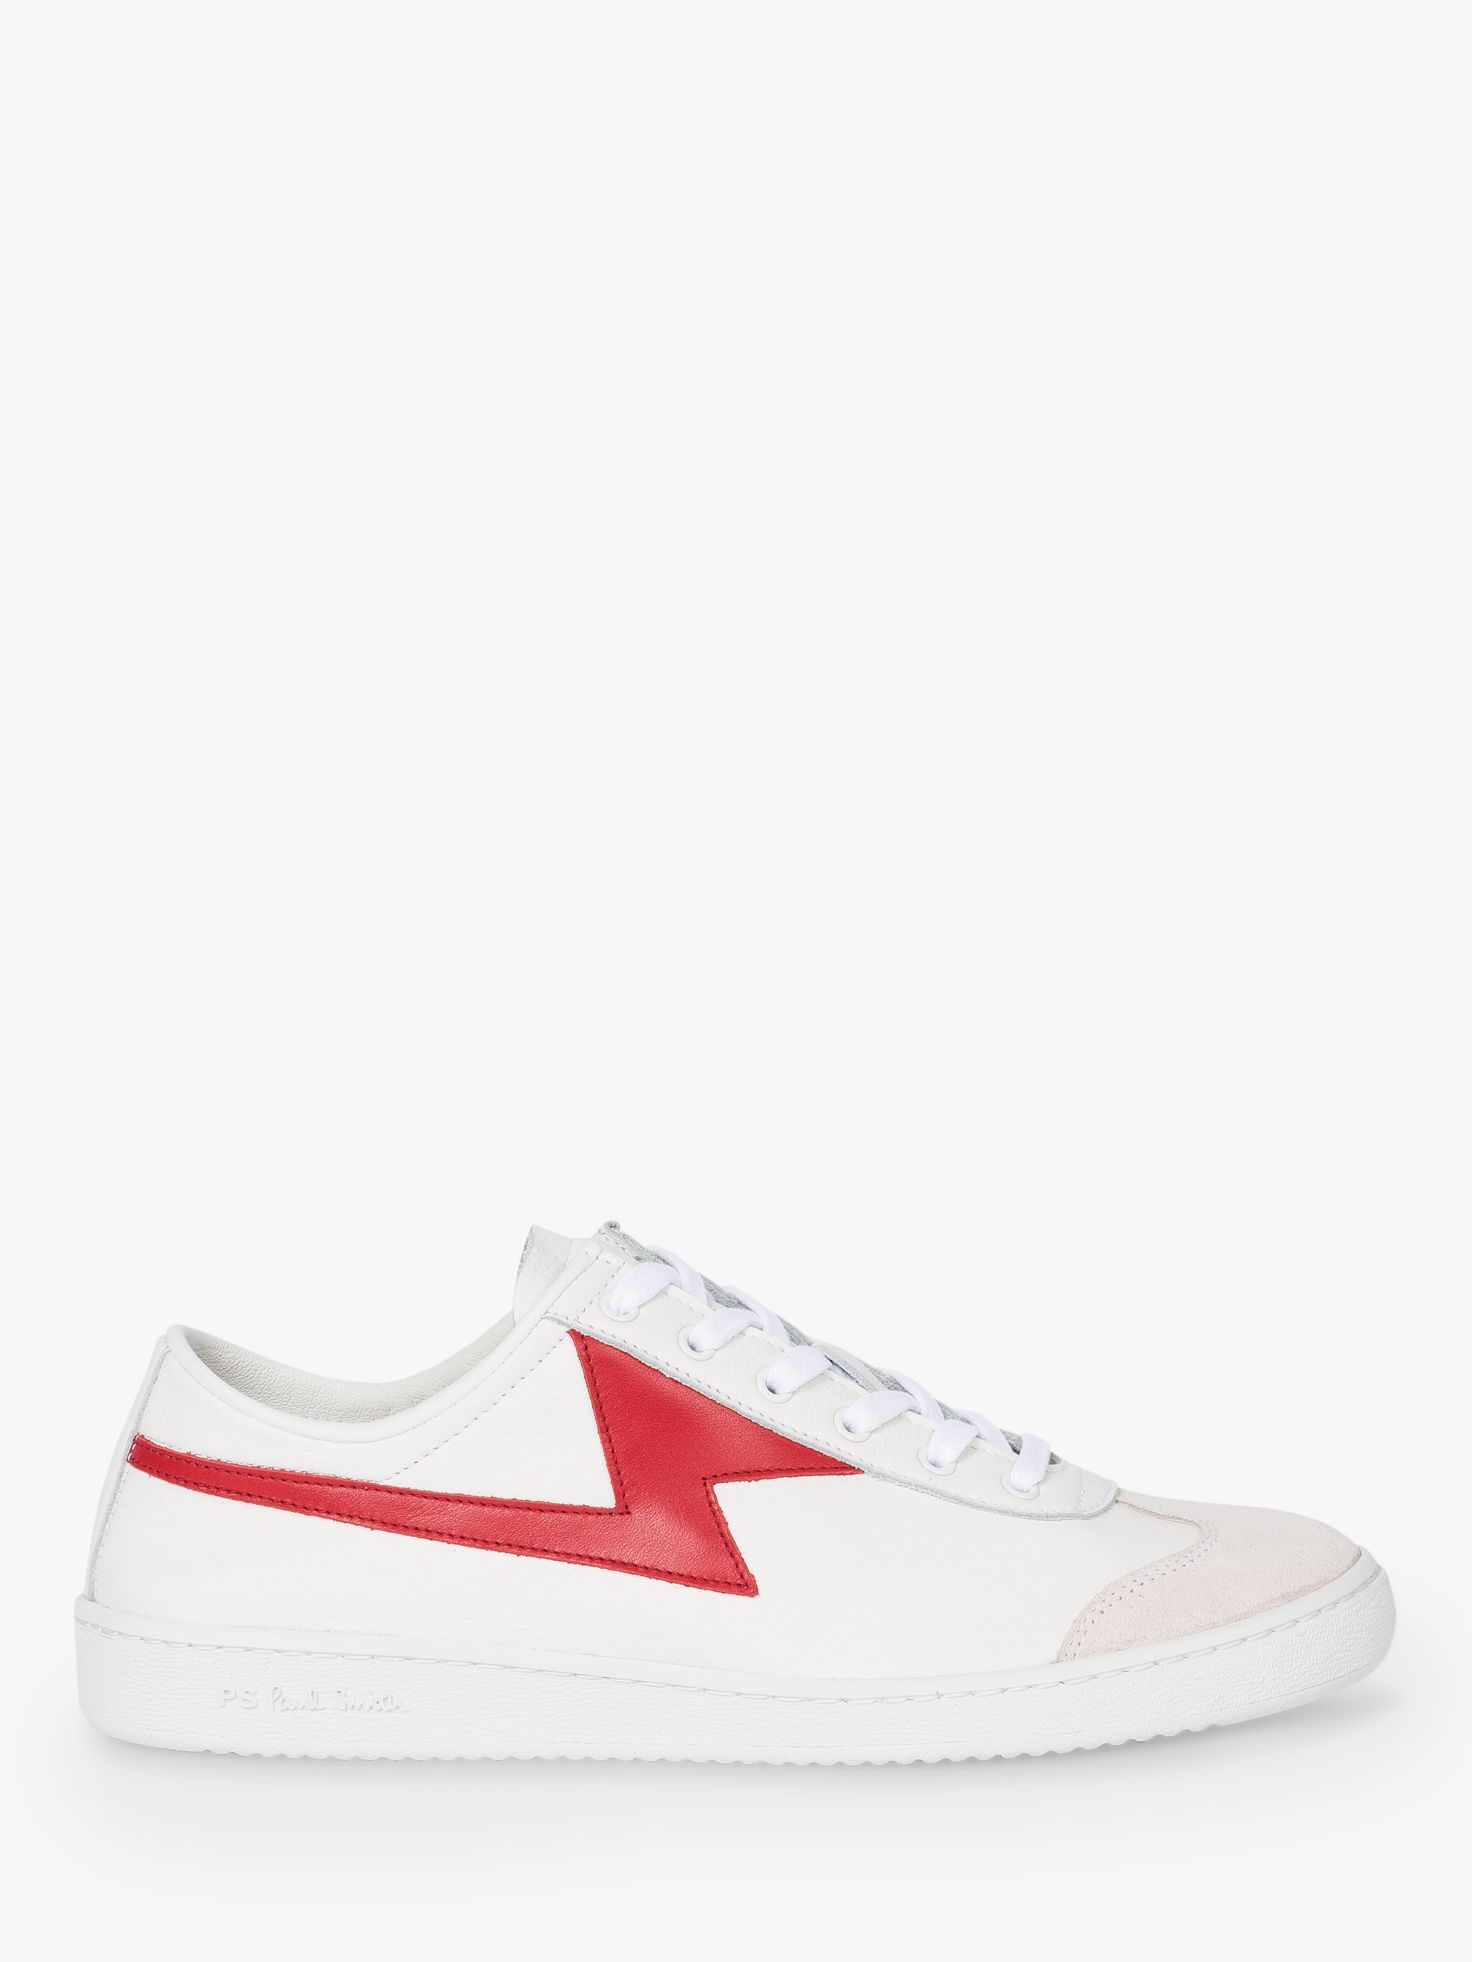 Marvelous Ps Paul Smith Ziggy Trainers At John Lewis Partners Download Free Architecture Designs Scobabritishbridgeorg